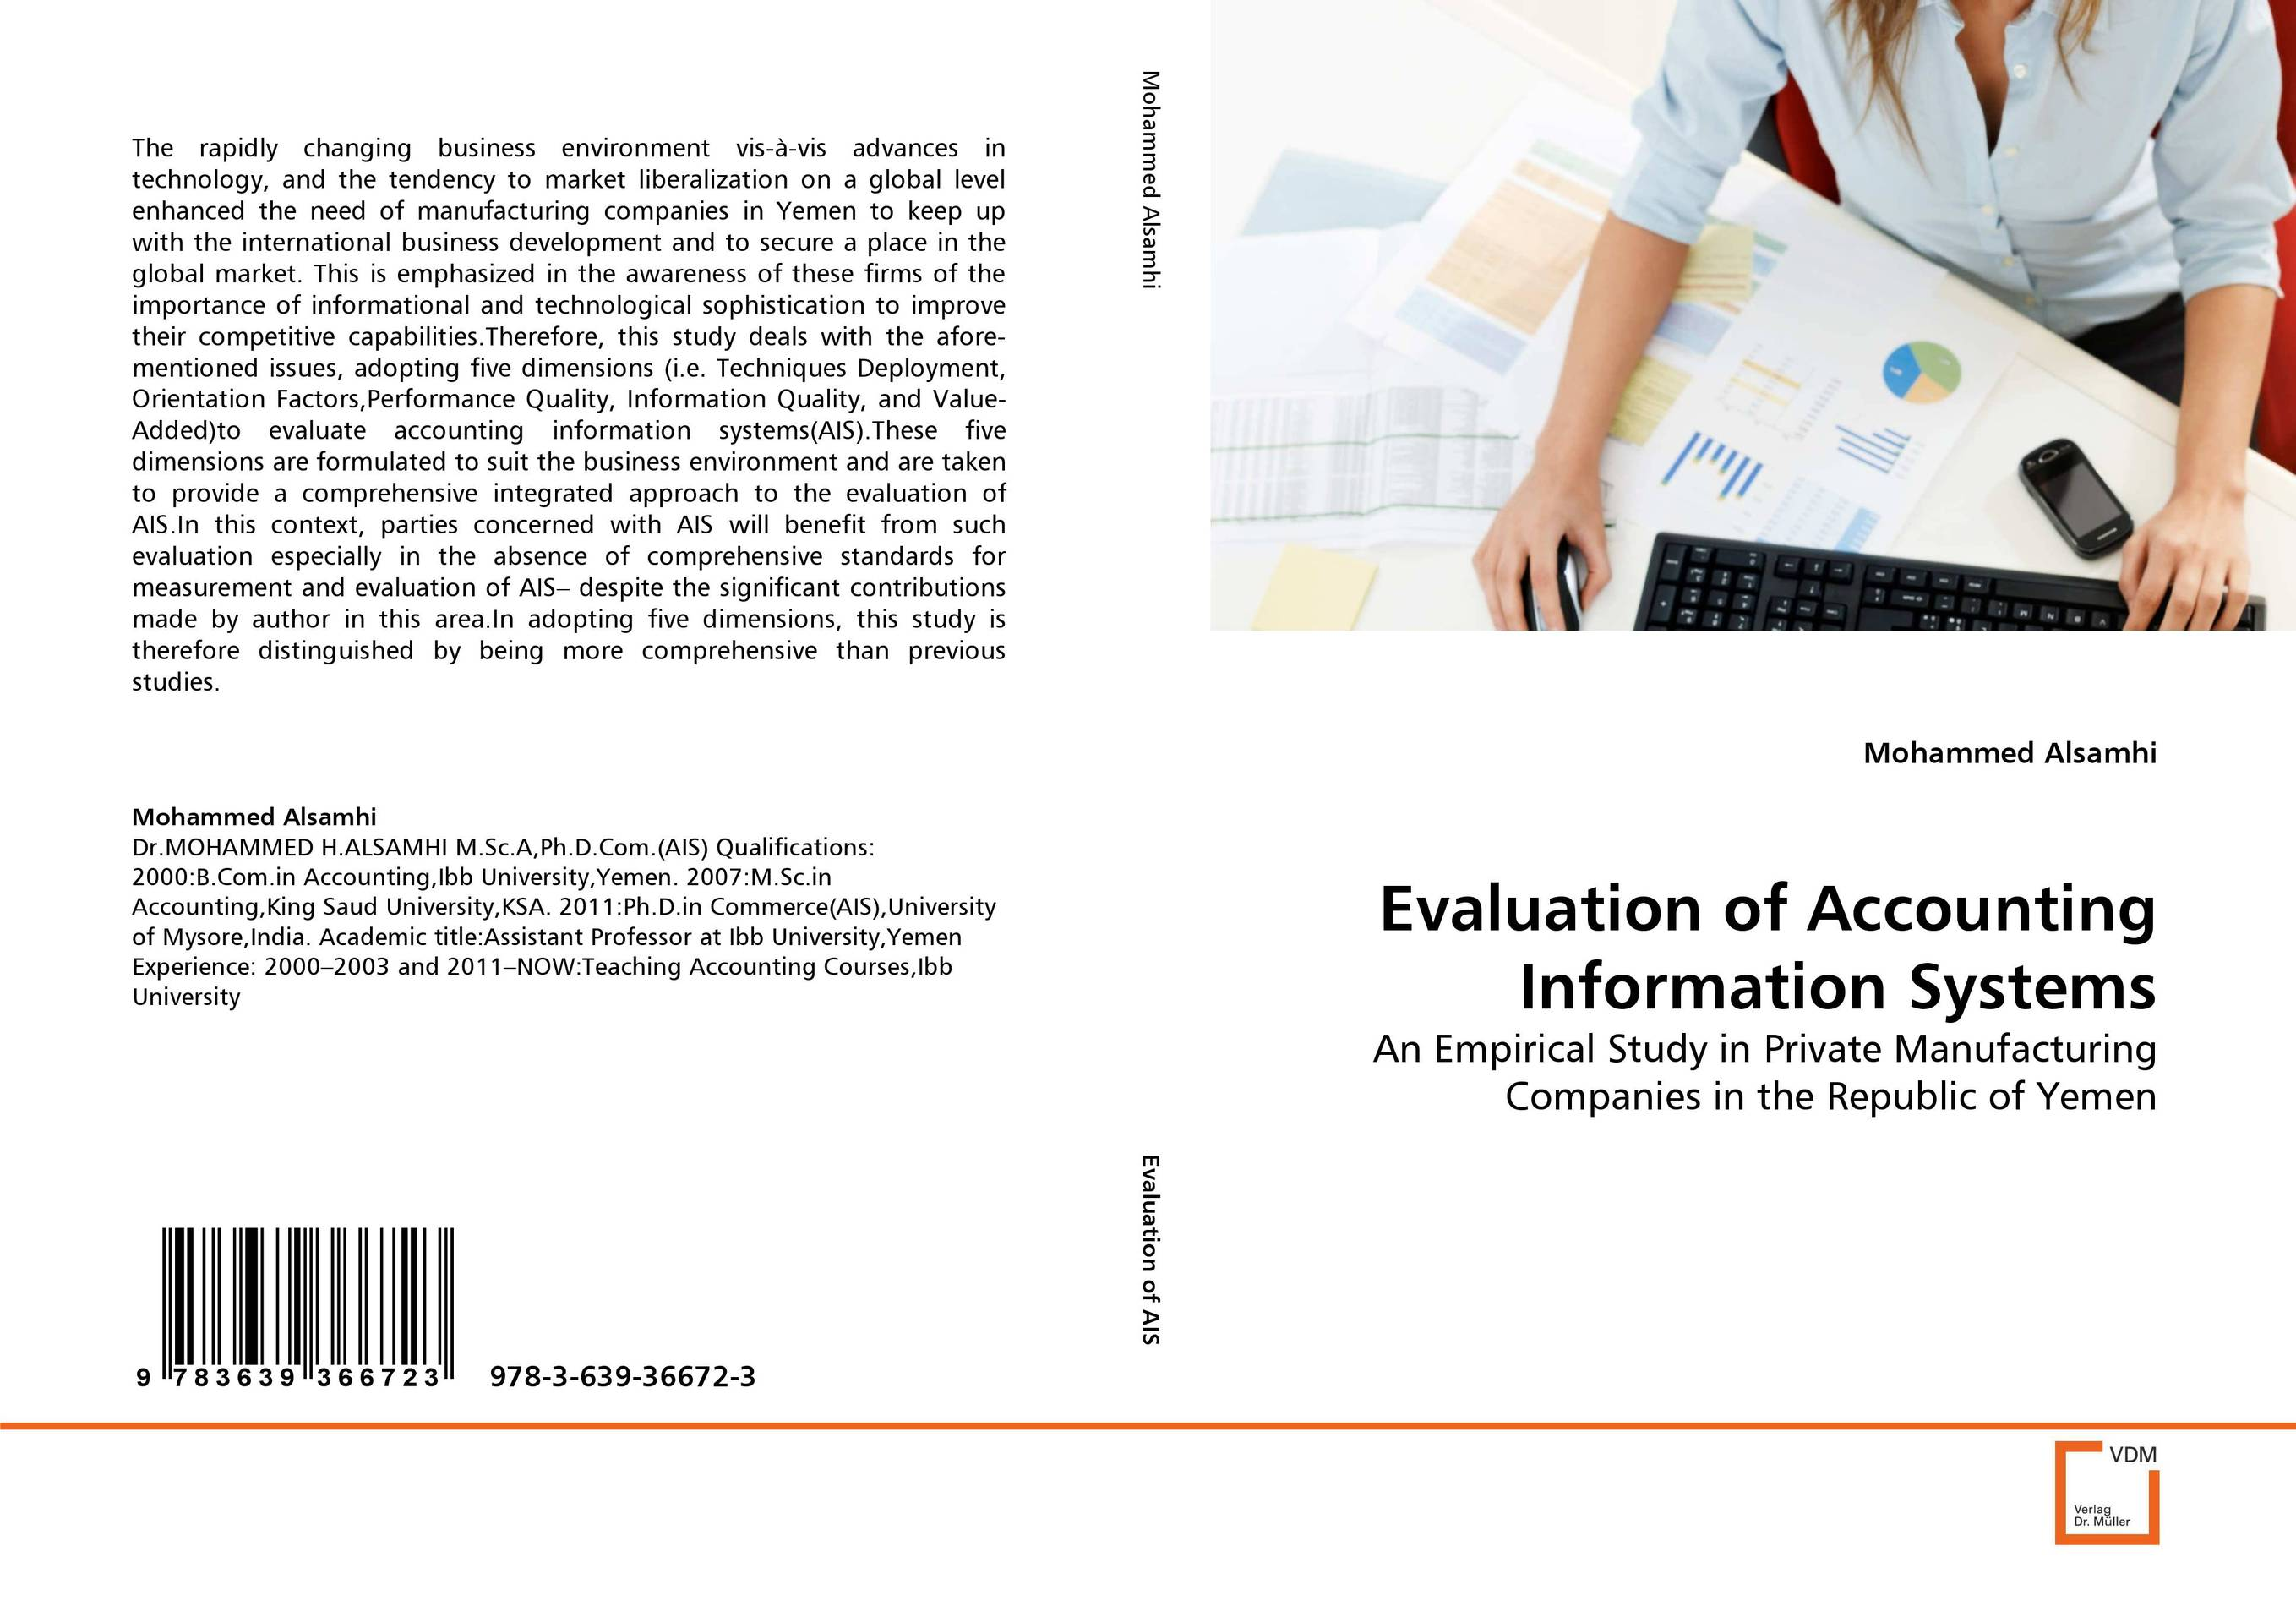 Evaluation of Accounting Information Systems thermodynamic and economic evaluation of co2 refrigeration systems